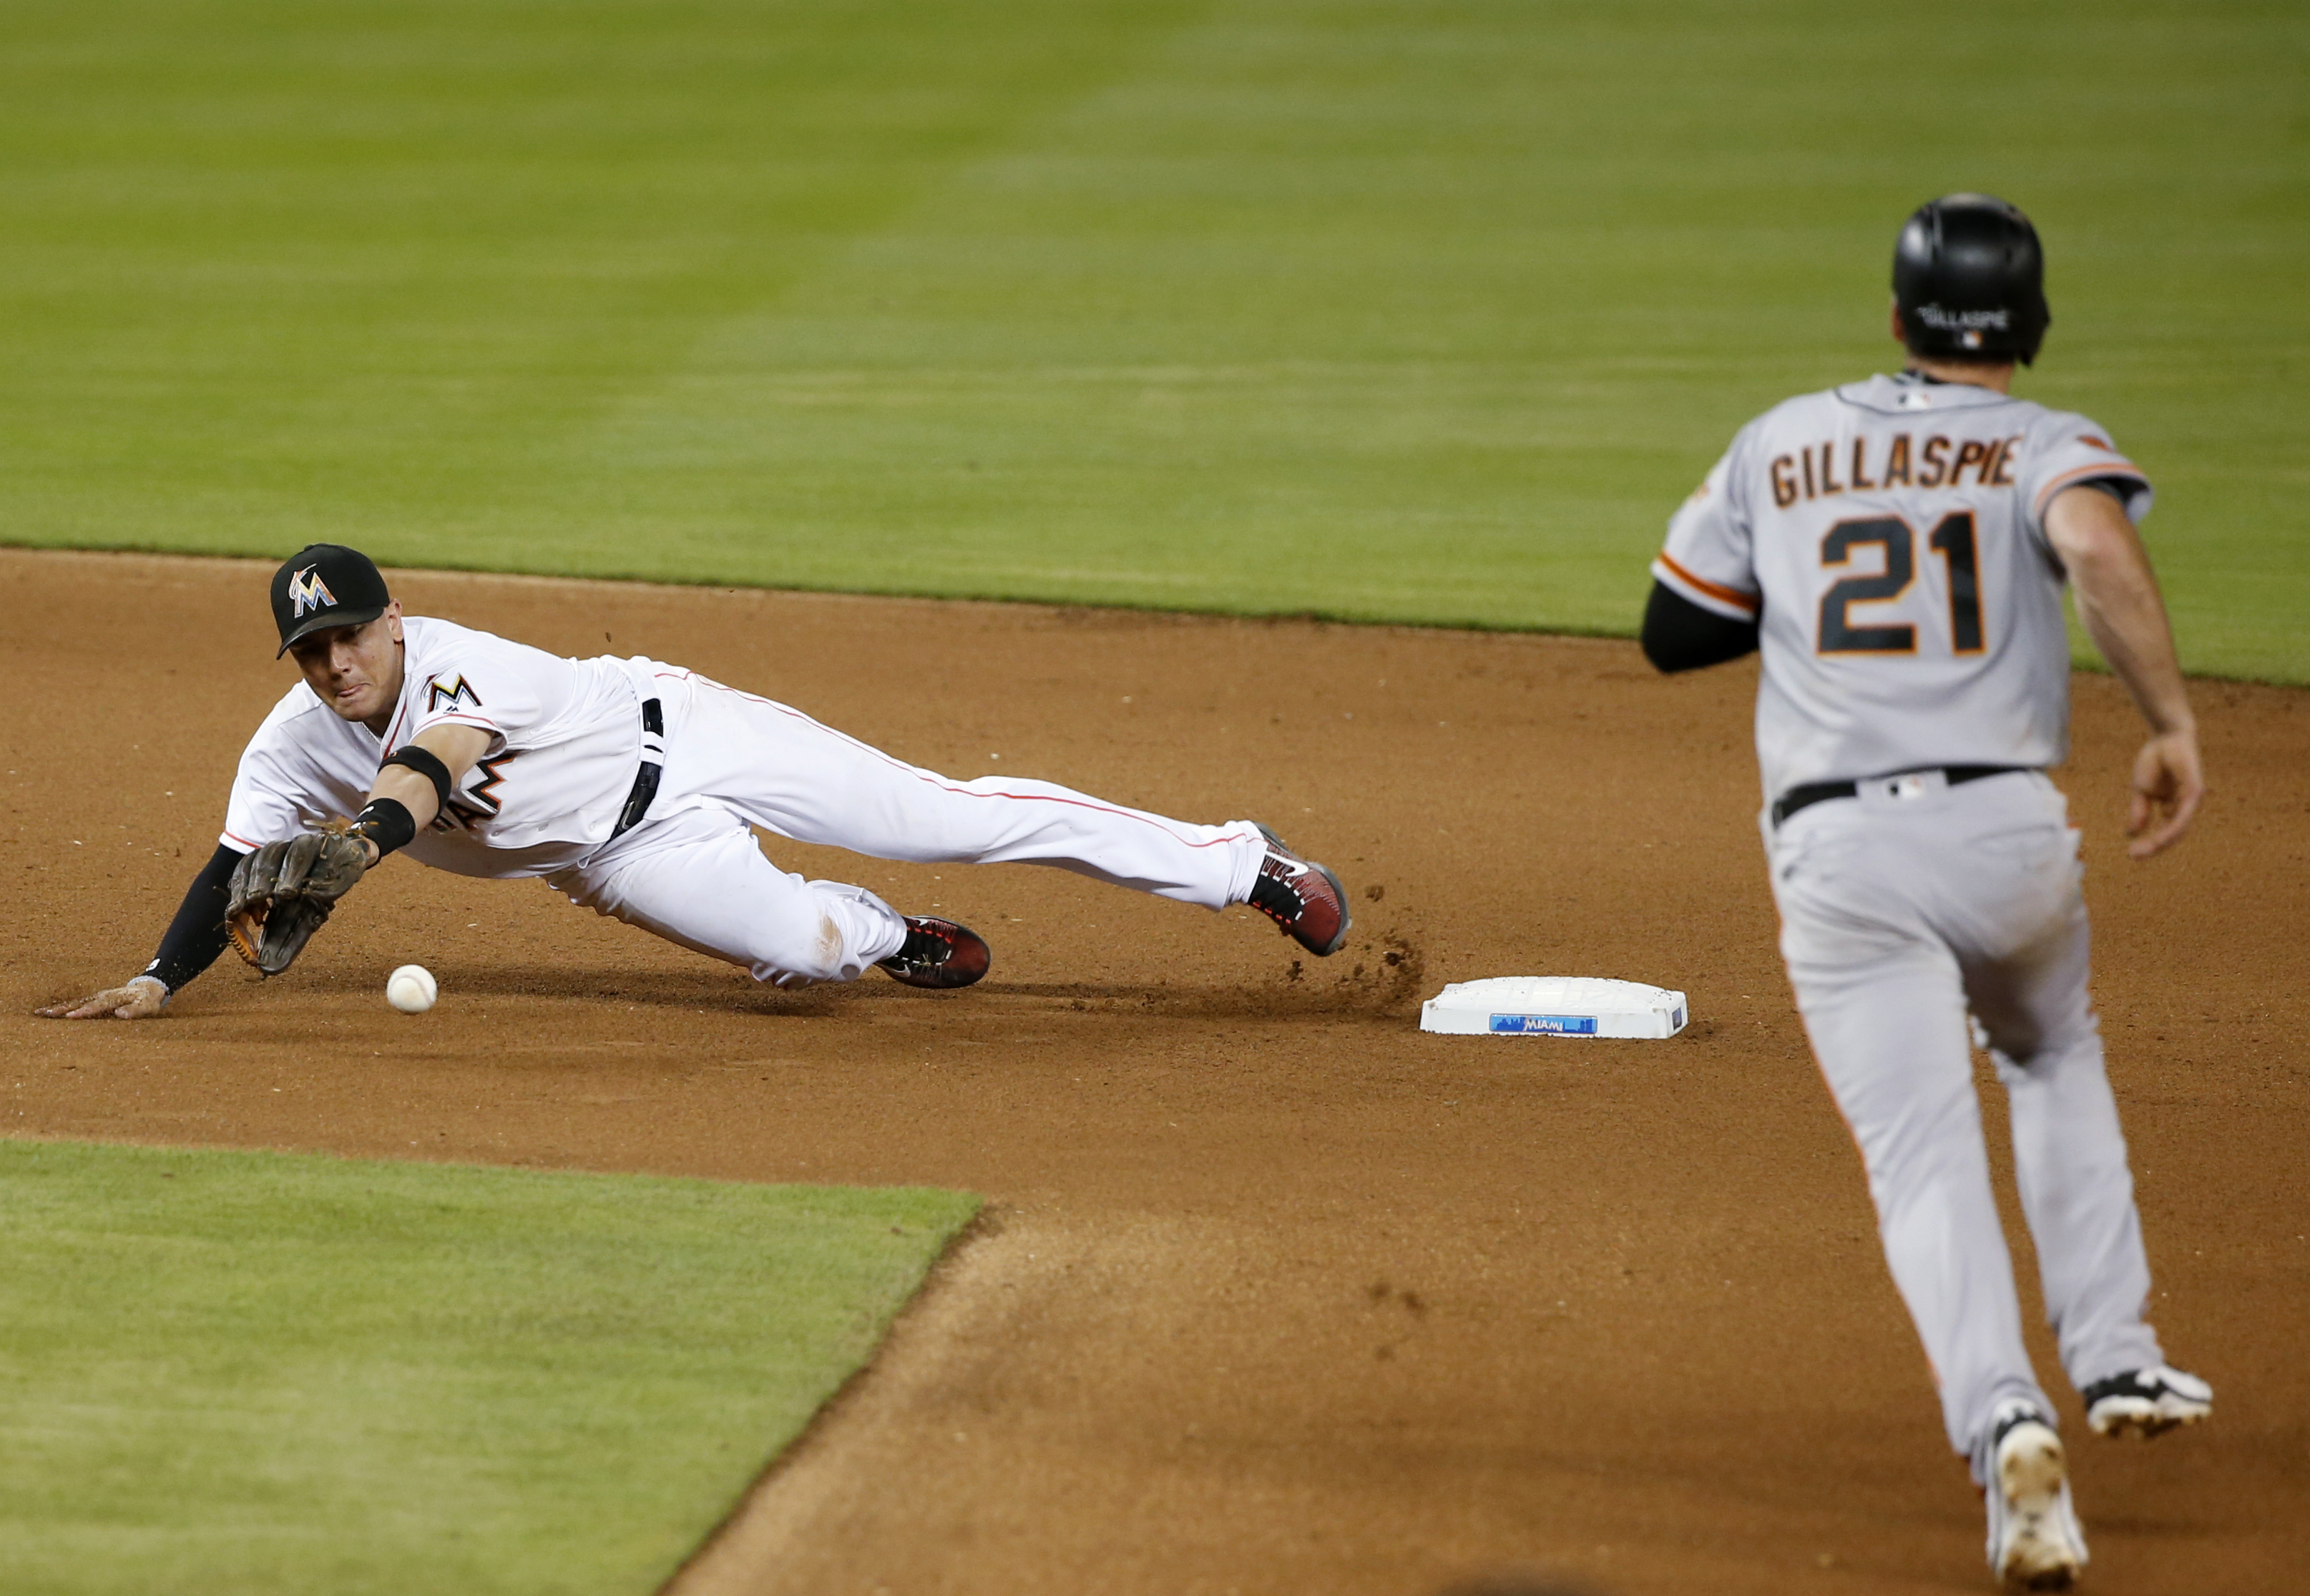 Miami Marlins shortstop Miguel Rojas dives for a throw from second baseman Dee Gordon, not seen, to put out San Francisco Giants' Conor Gillaspie (21) at second base during the fourth inning of a baseball game, Tuesday, Aug. 9, 2016, in Miami. (AP Photo/W